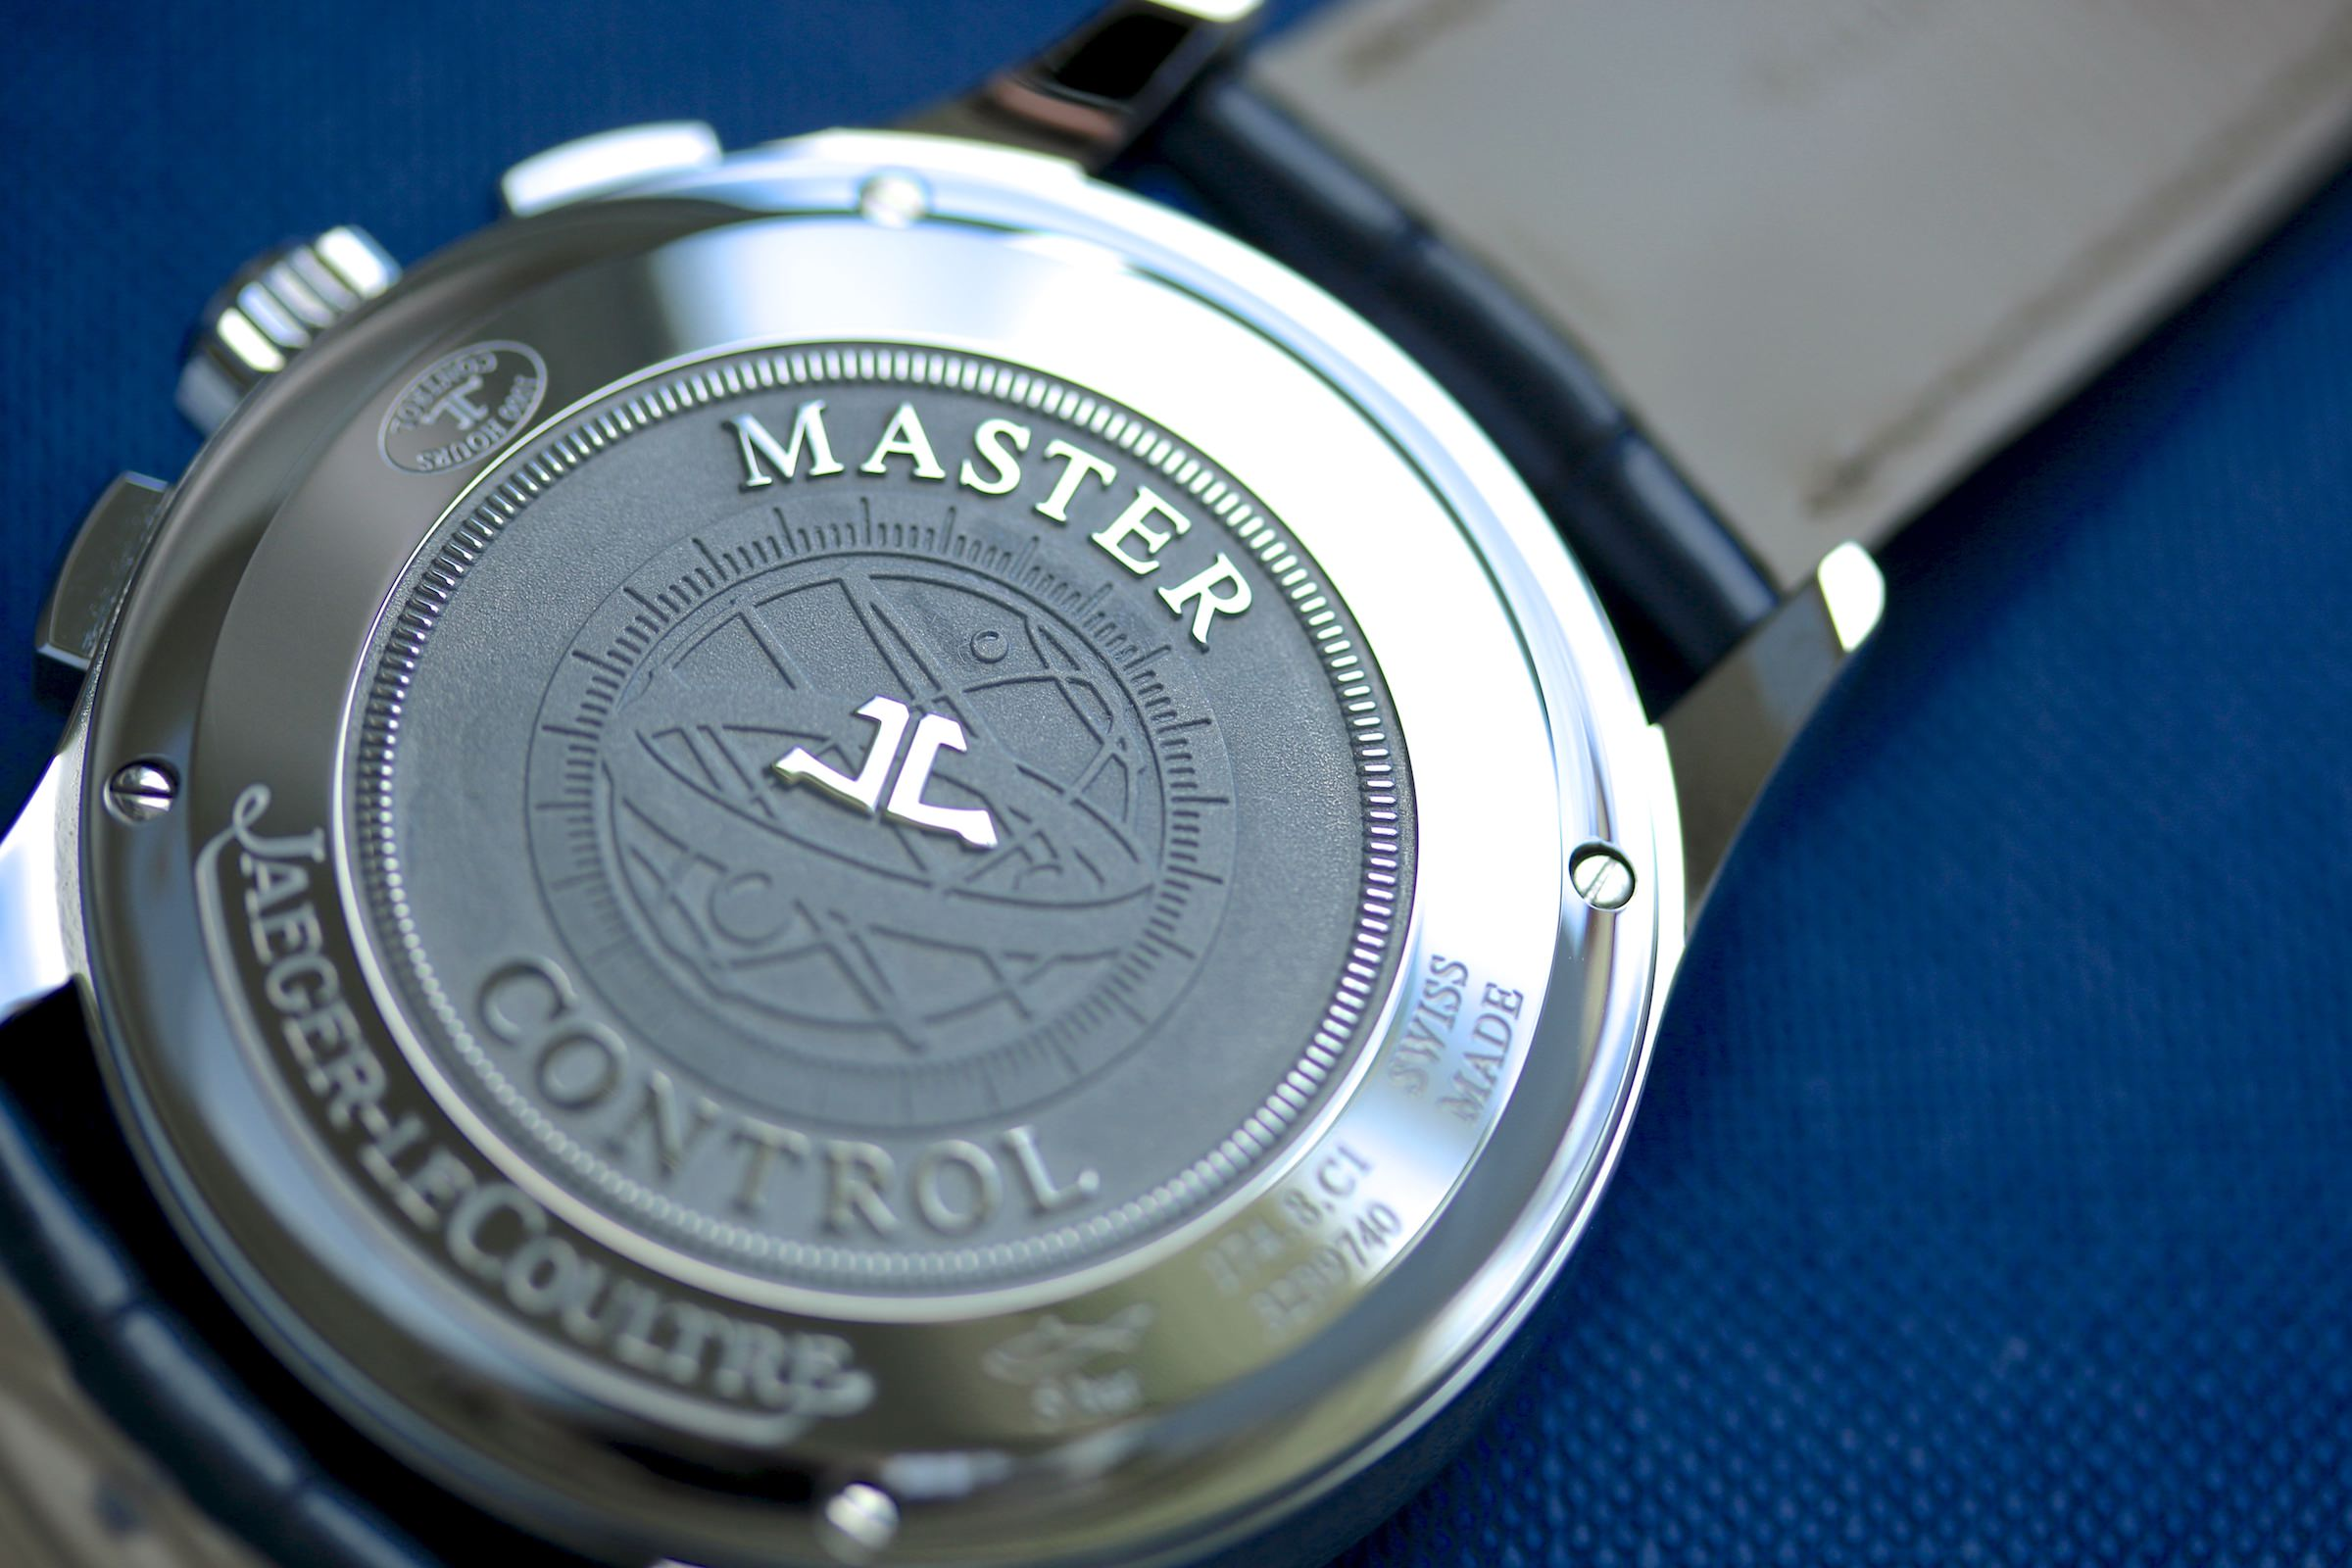 Die Jaeger-LeCoultre Master Chronograph